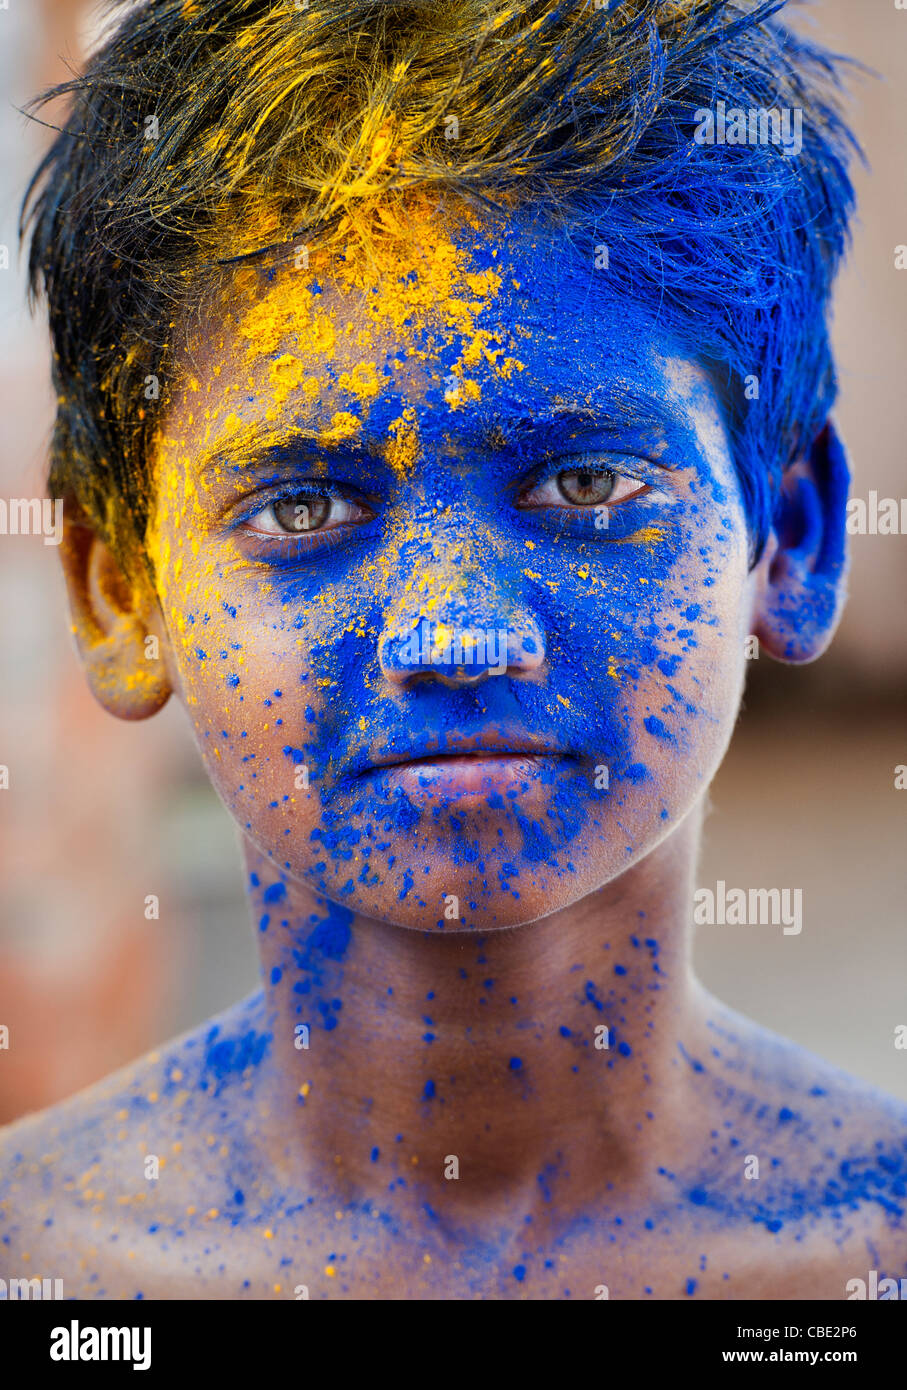 Young Indian boy covered in coloured powder pigment - Stock Image